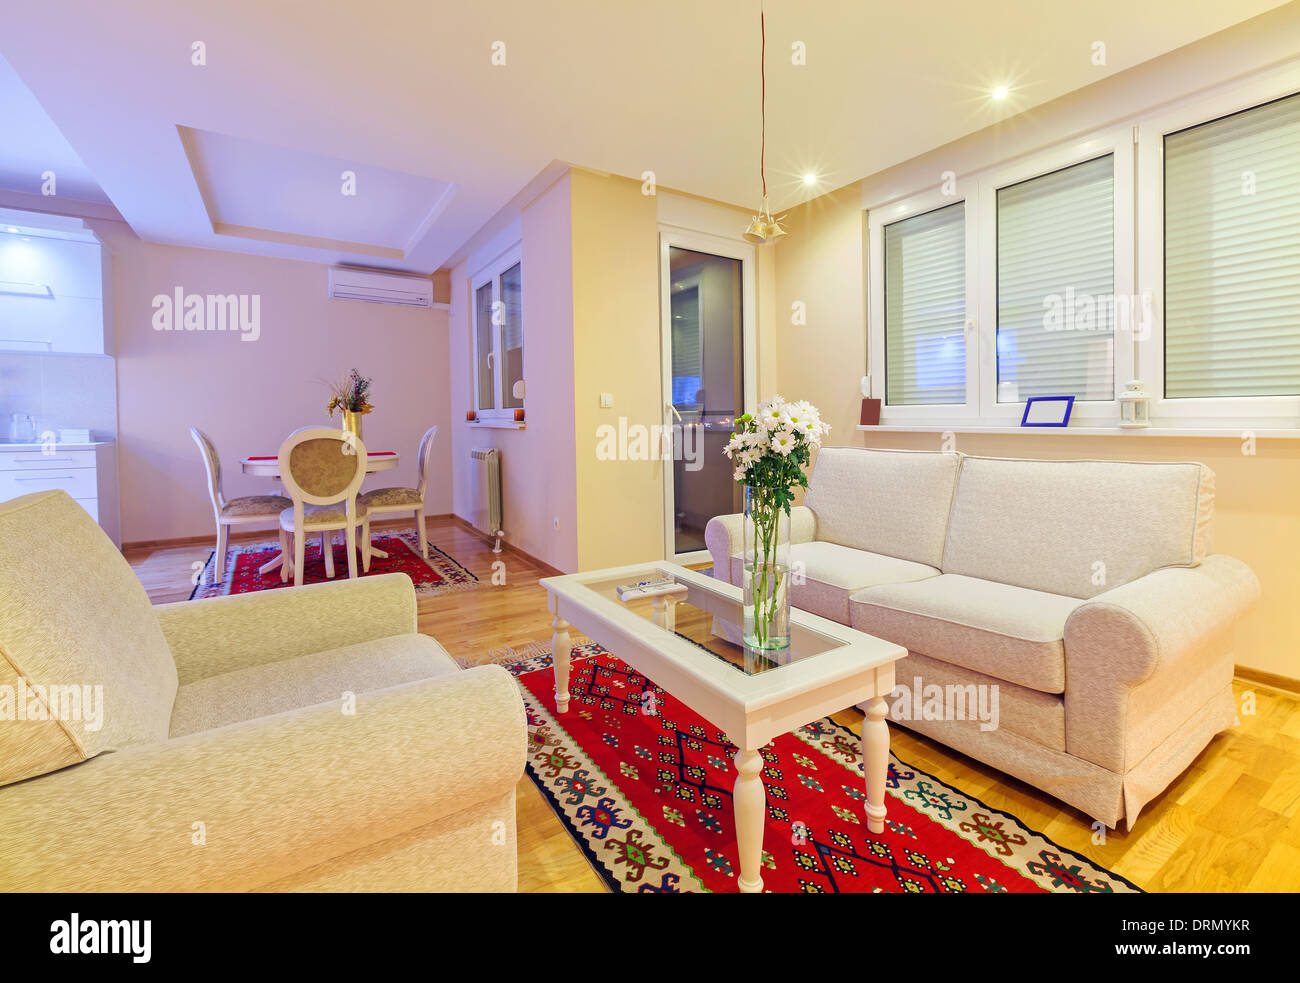 Small apartment interior, new and clean, modern design. - Stock Image